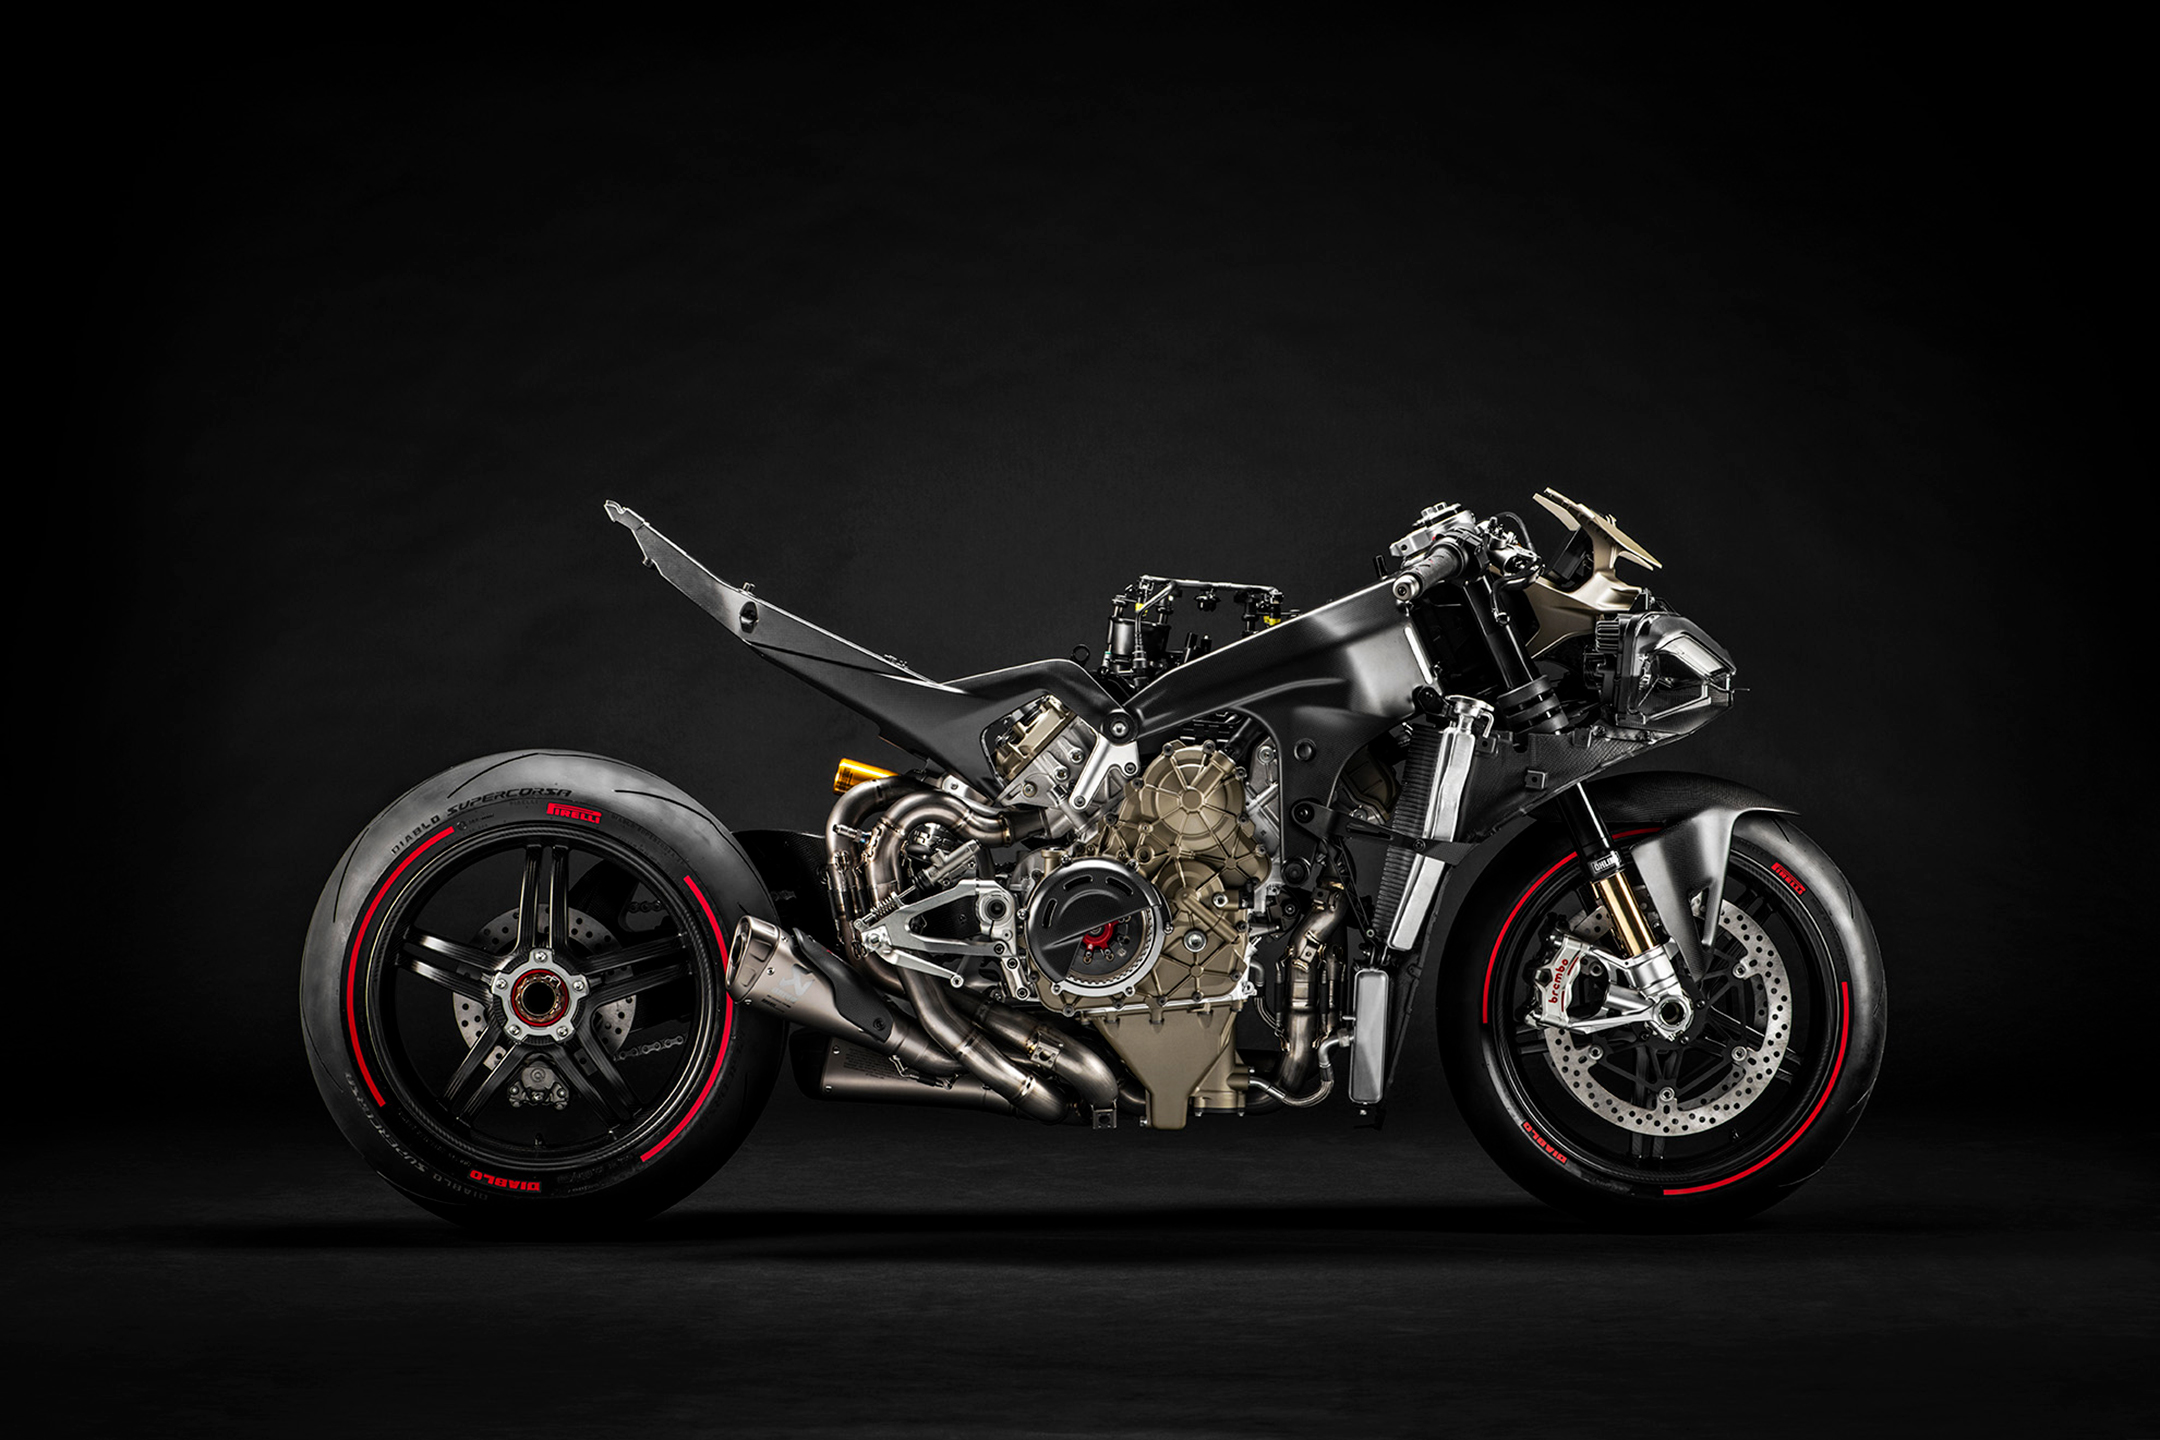 Ducati Superleggera V4 - 2020 - chassis / châssis - side-face exhaust / profil échappement